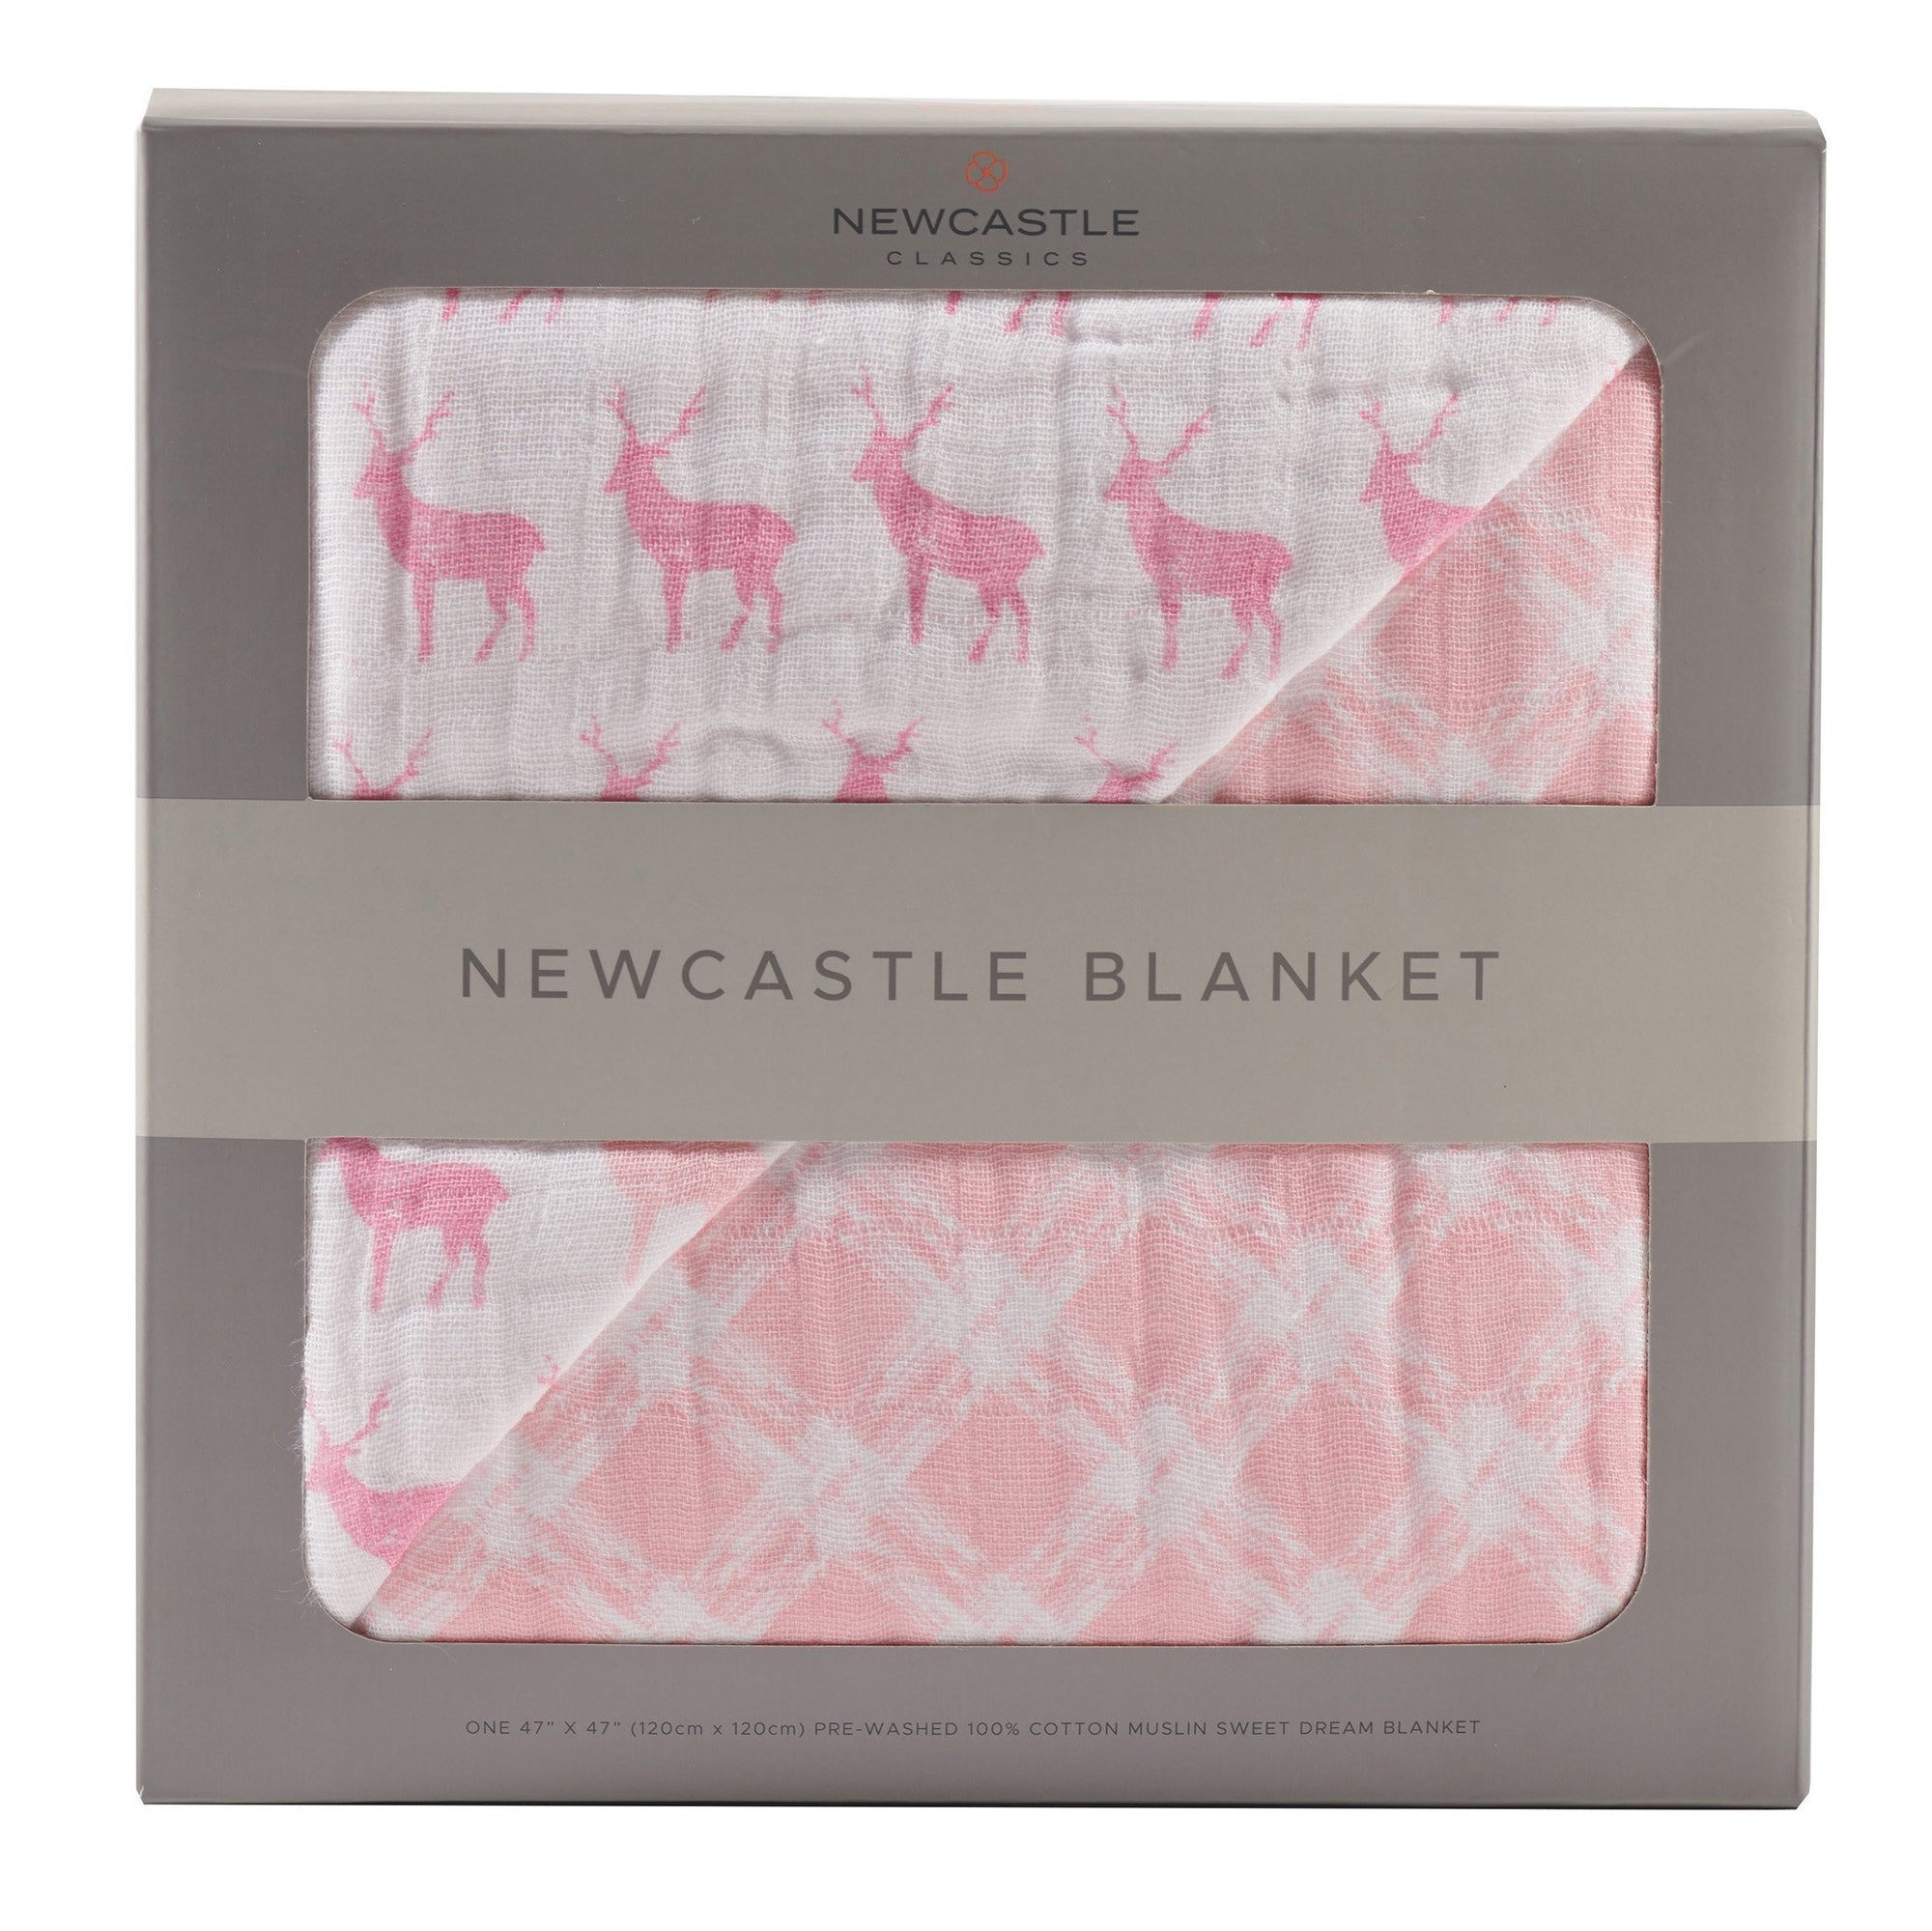 Pink Deer & Primrose Pink Plaid Newcastle Blanket - Baby World Inc